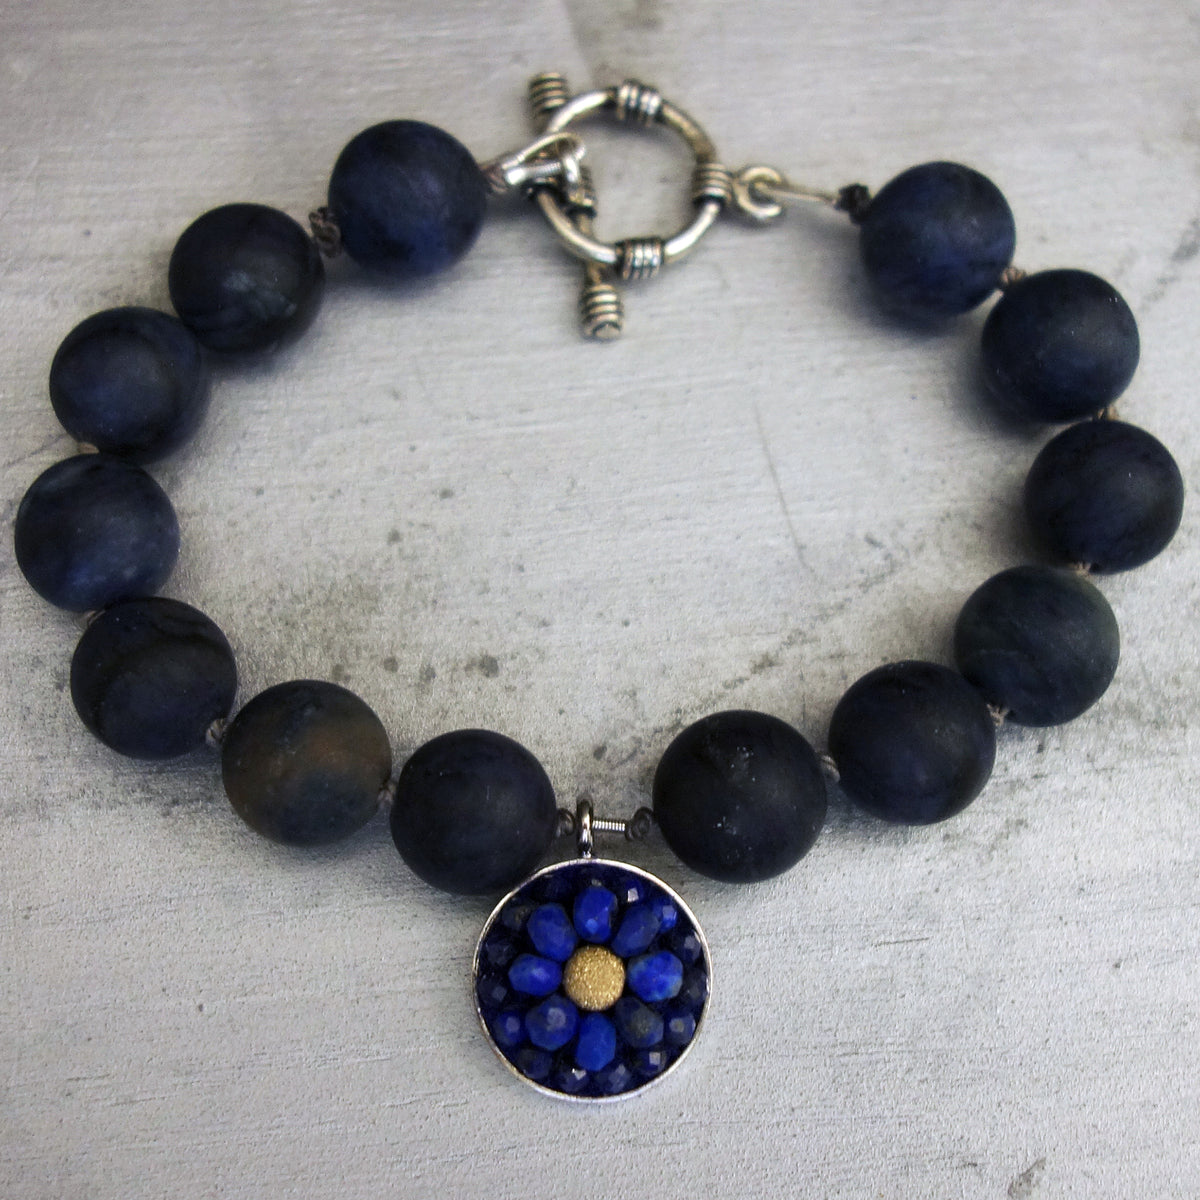 African Blue Dumortierite and Lapis mosaic bracelet